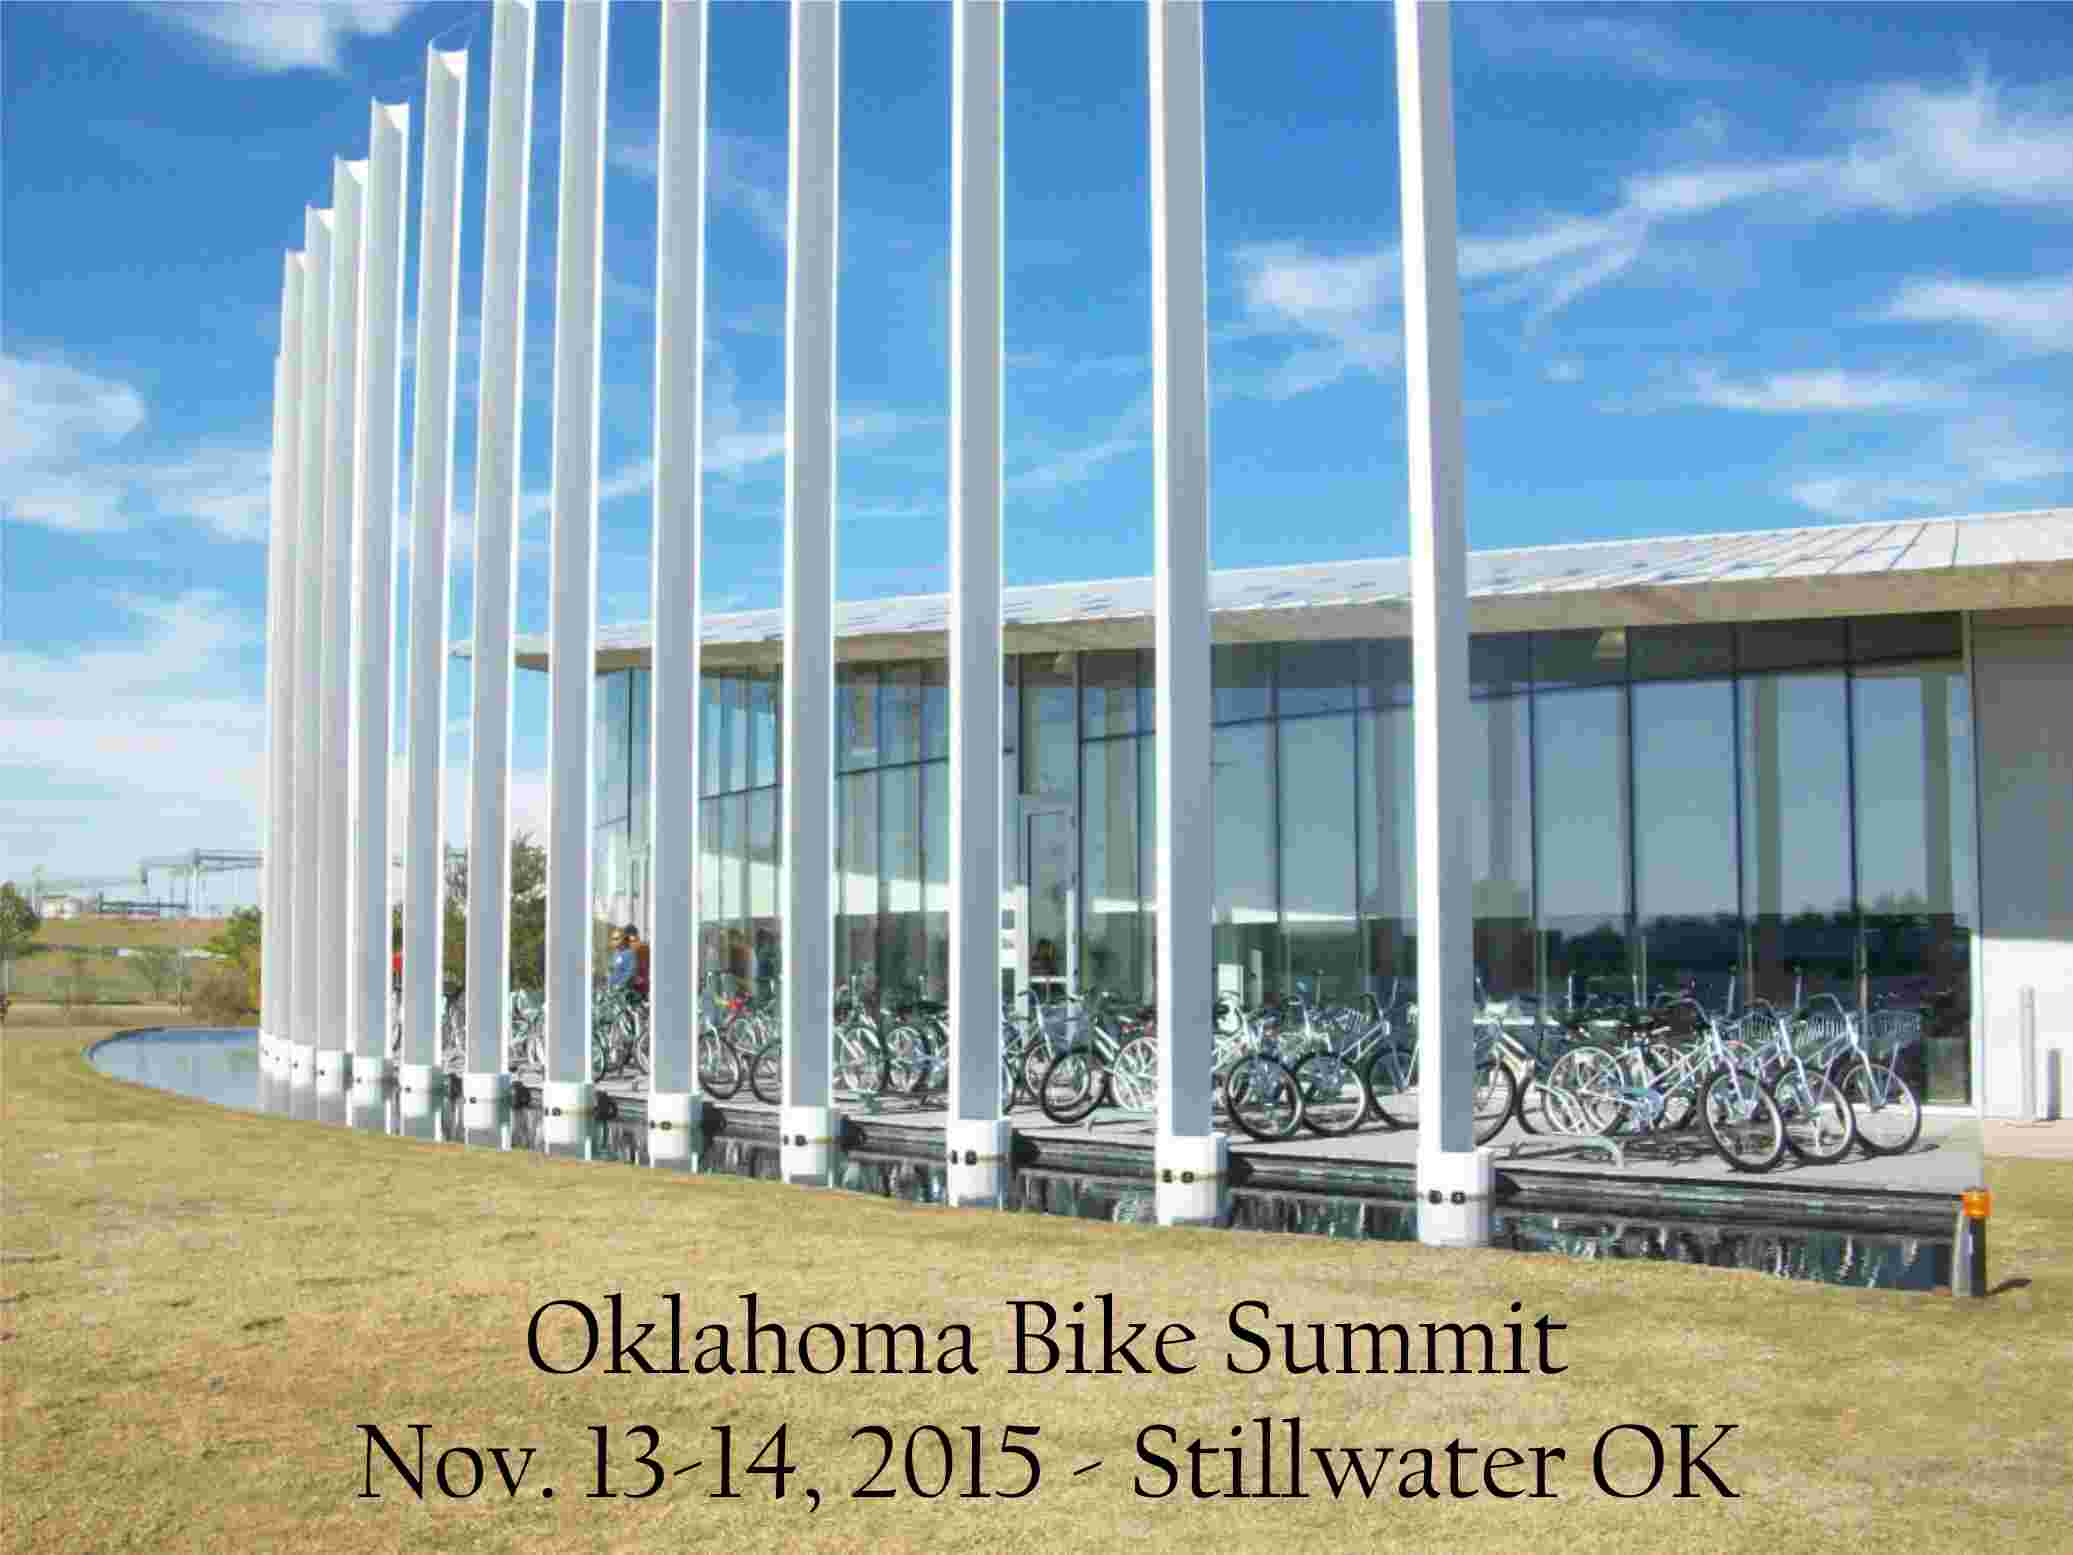 OK Bike Summit